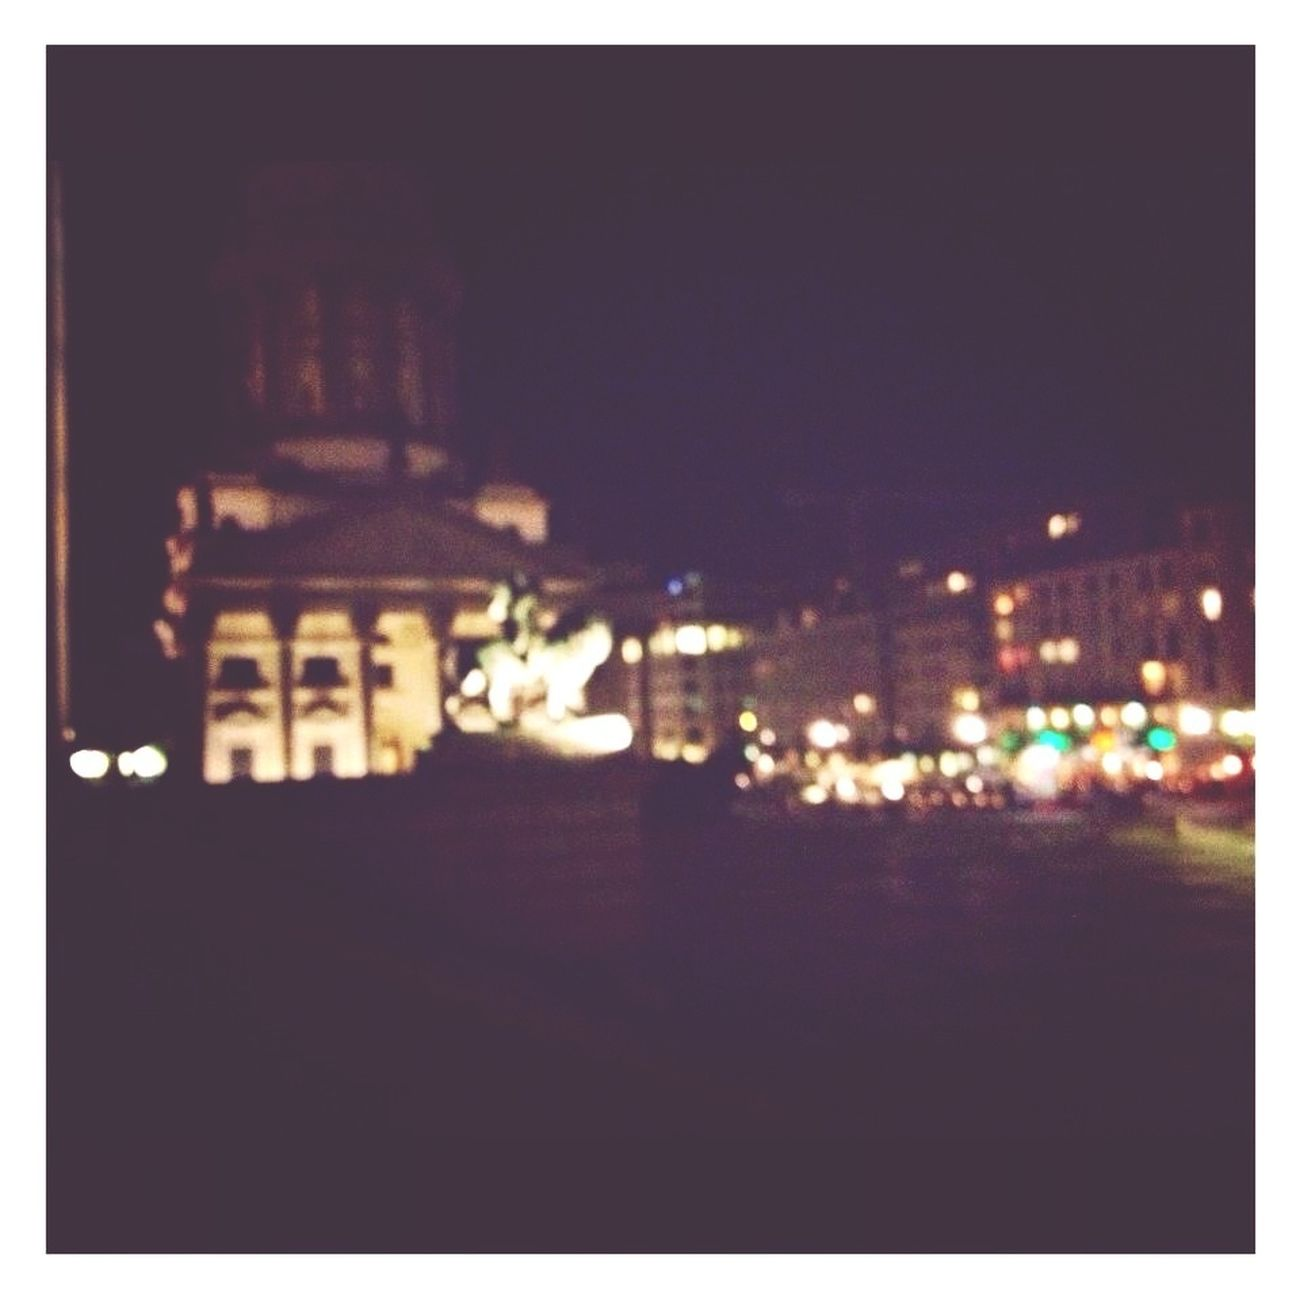 At Gendarmenmarkt